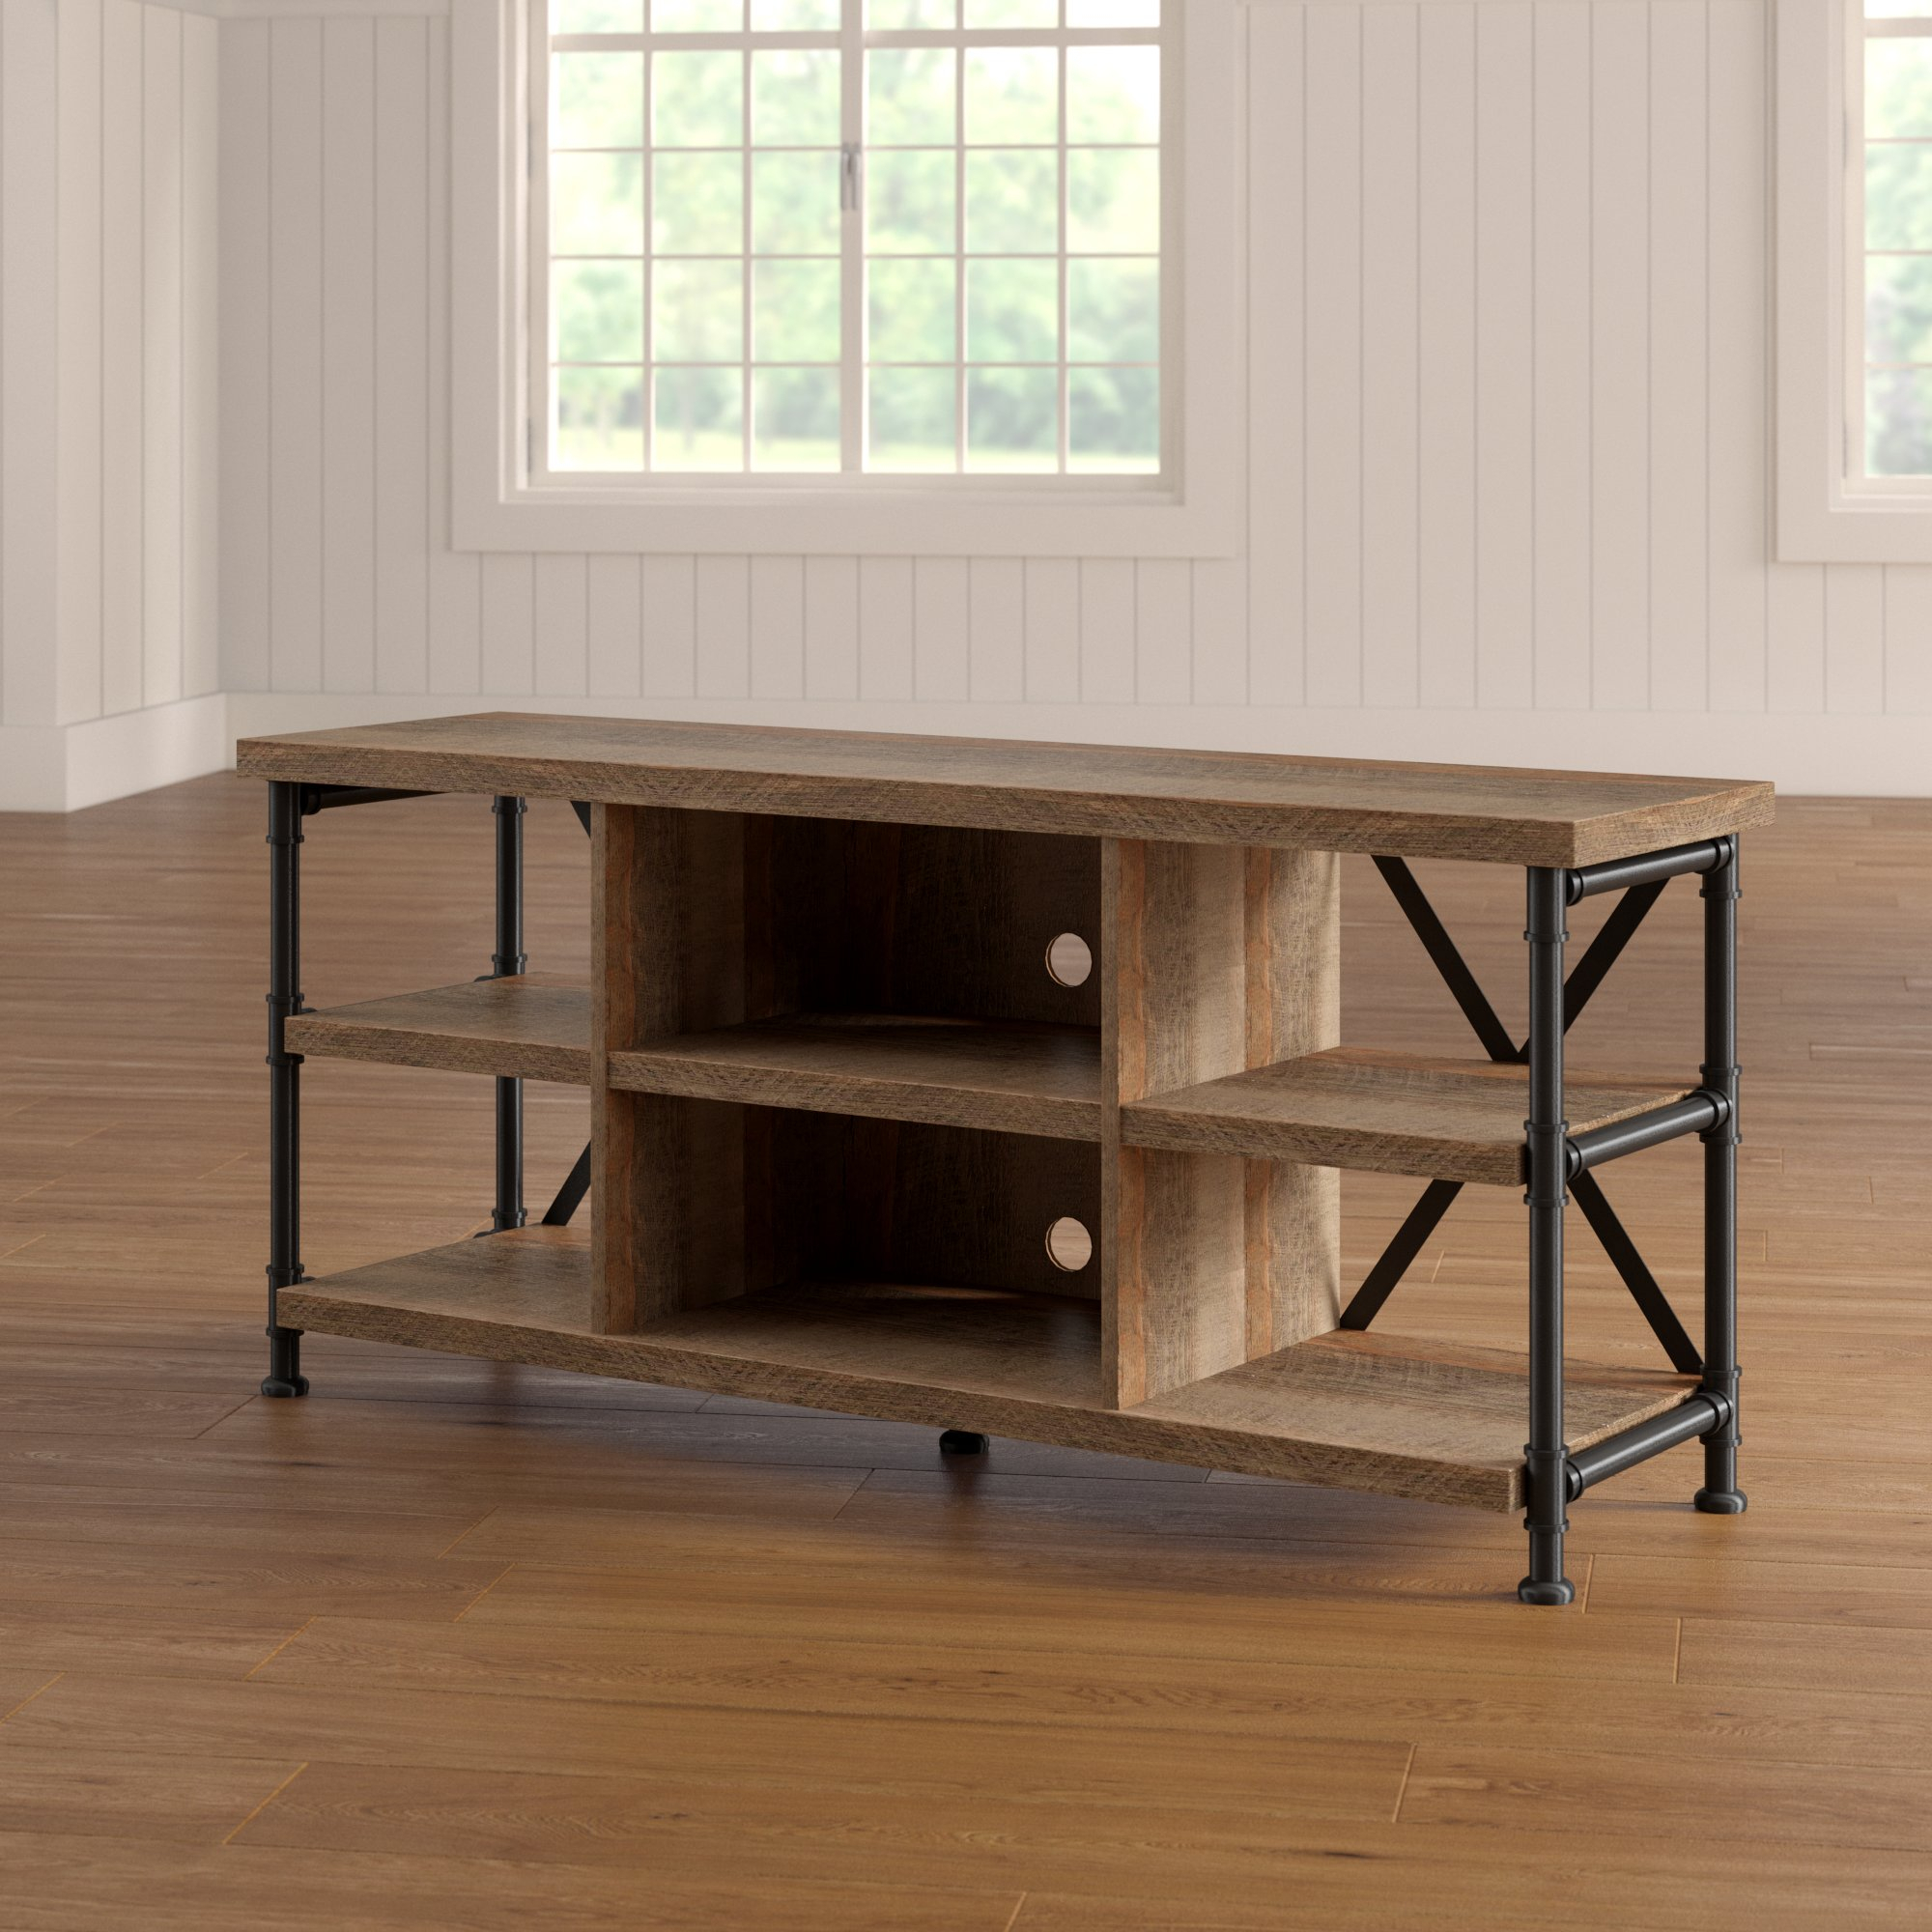 Tv Stands & Entertainment Centers You'll Love | Wayfair Within Kenzie 72 Inch Open Display Tv Stands (View 15 of 30)